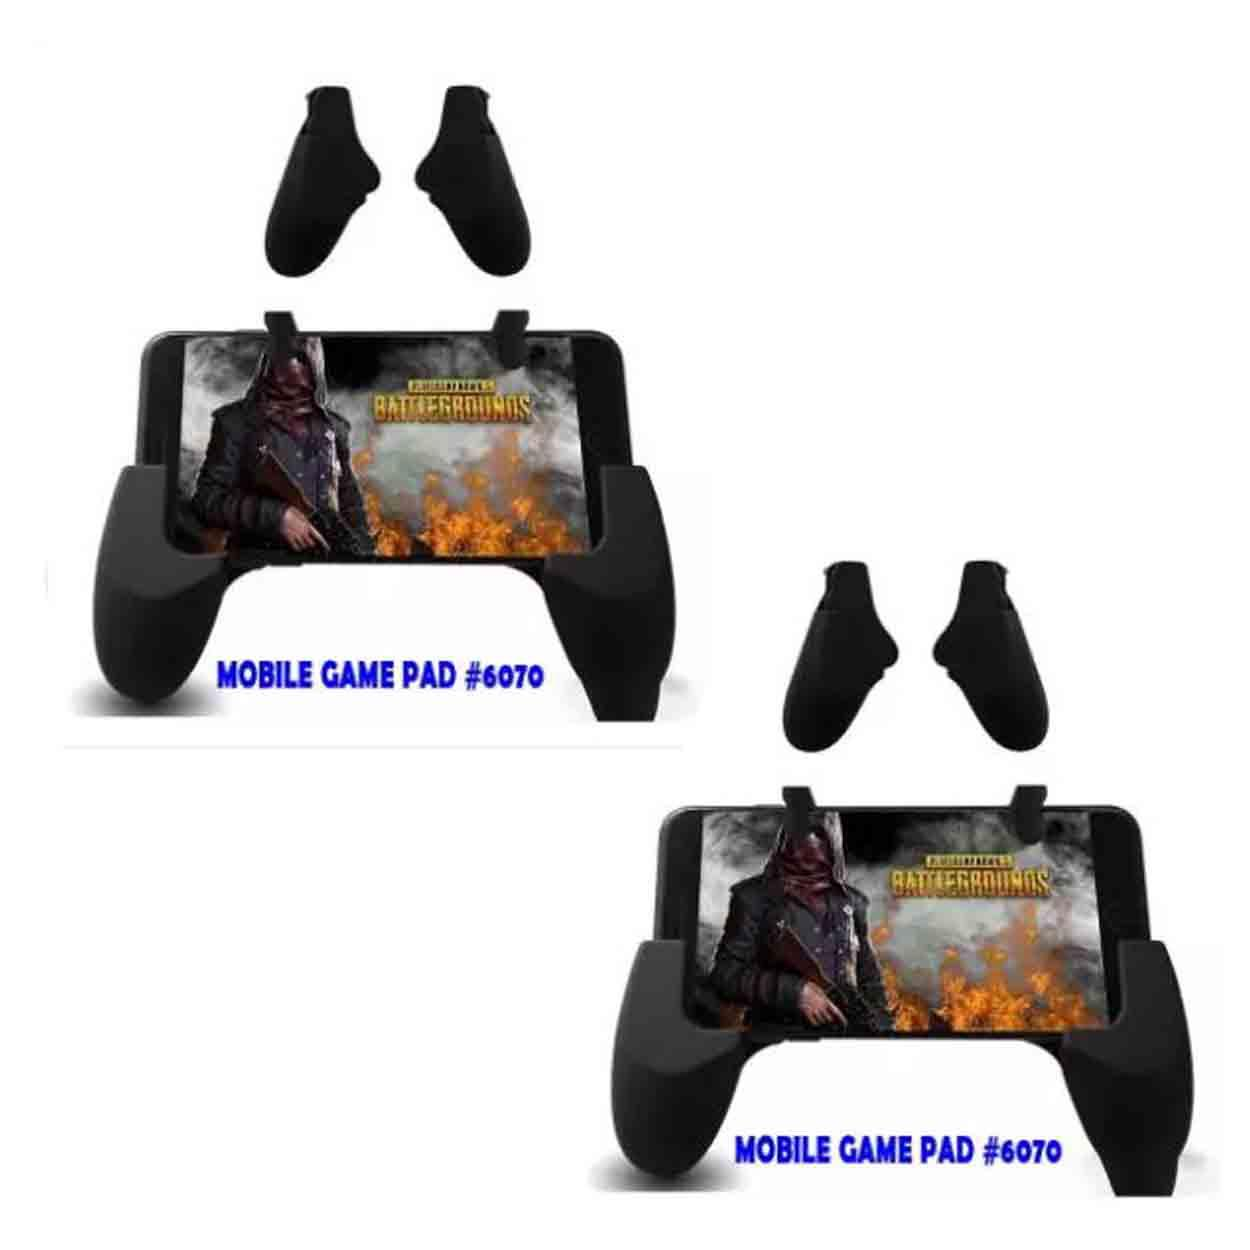 Ps Controller For Sale Dual Shock Prices Brands Stick Pubg Mobile Pad Set Of 2 6070 Game Triggers Pugb Phone Gamepad Gaming